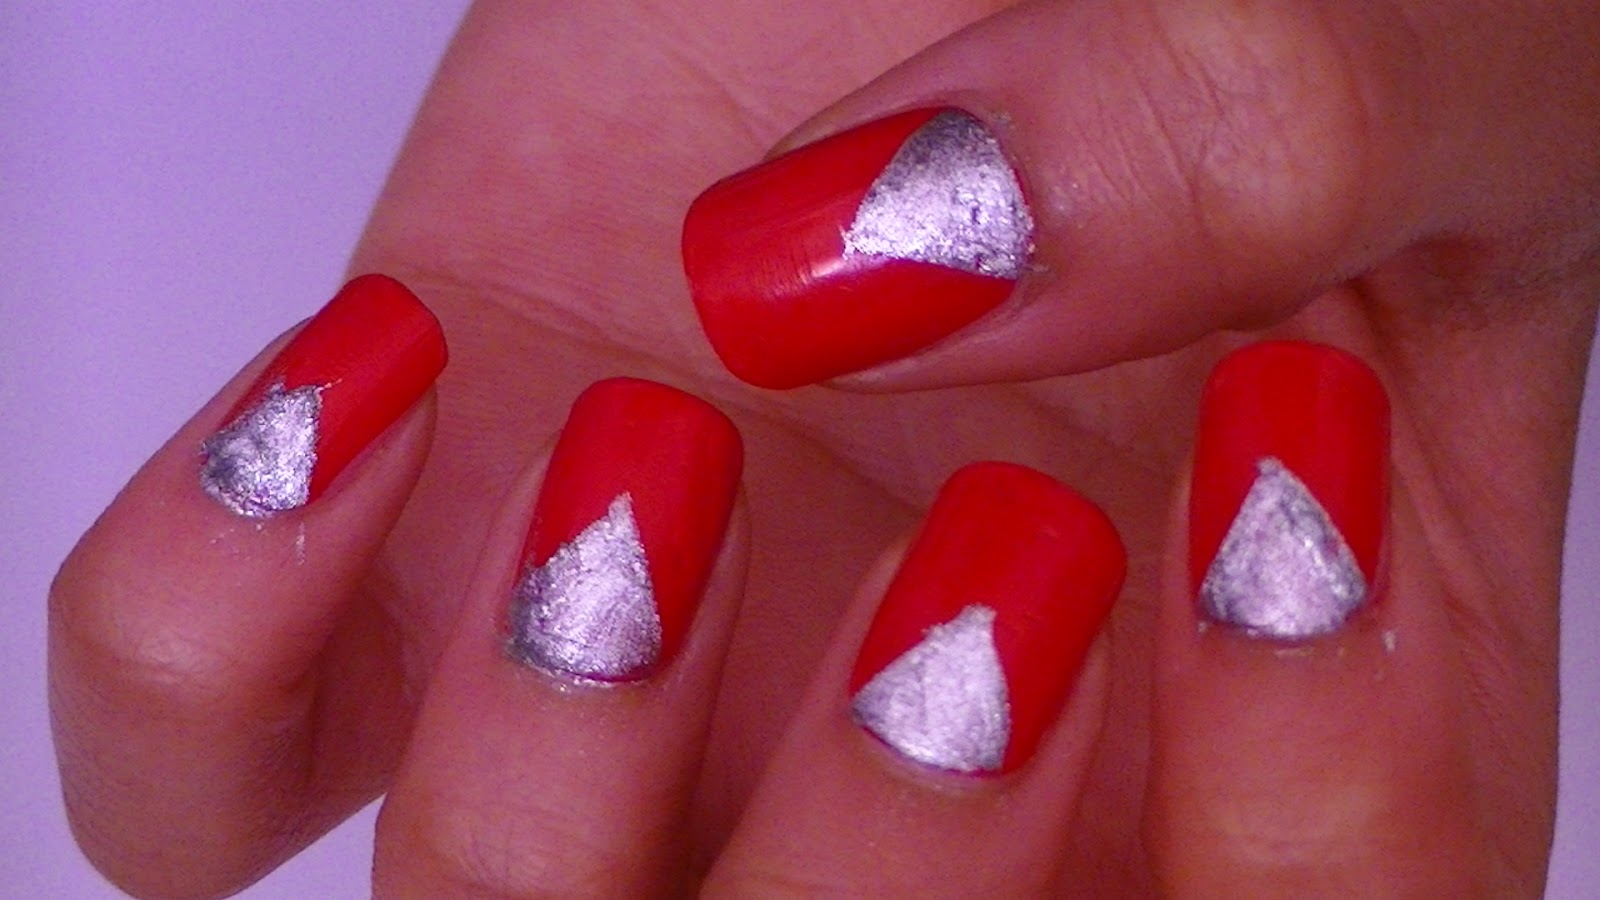 Nail Polish Reviews + Swatches!: Kylie Jenner Inspired Red and ...